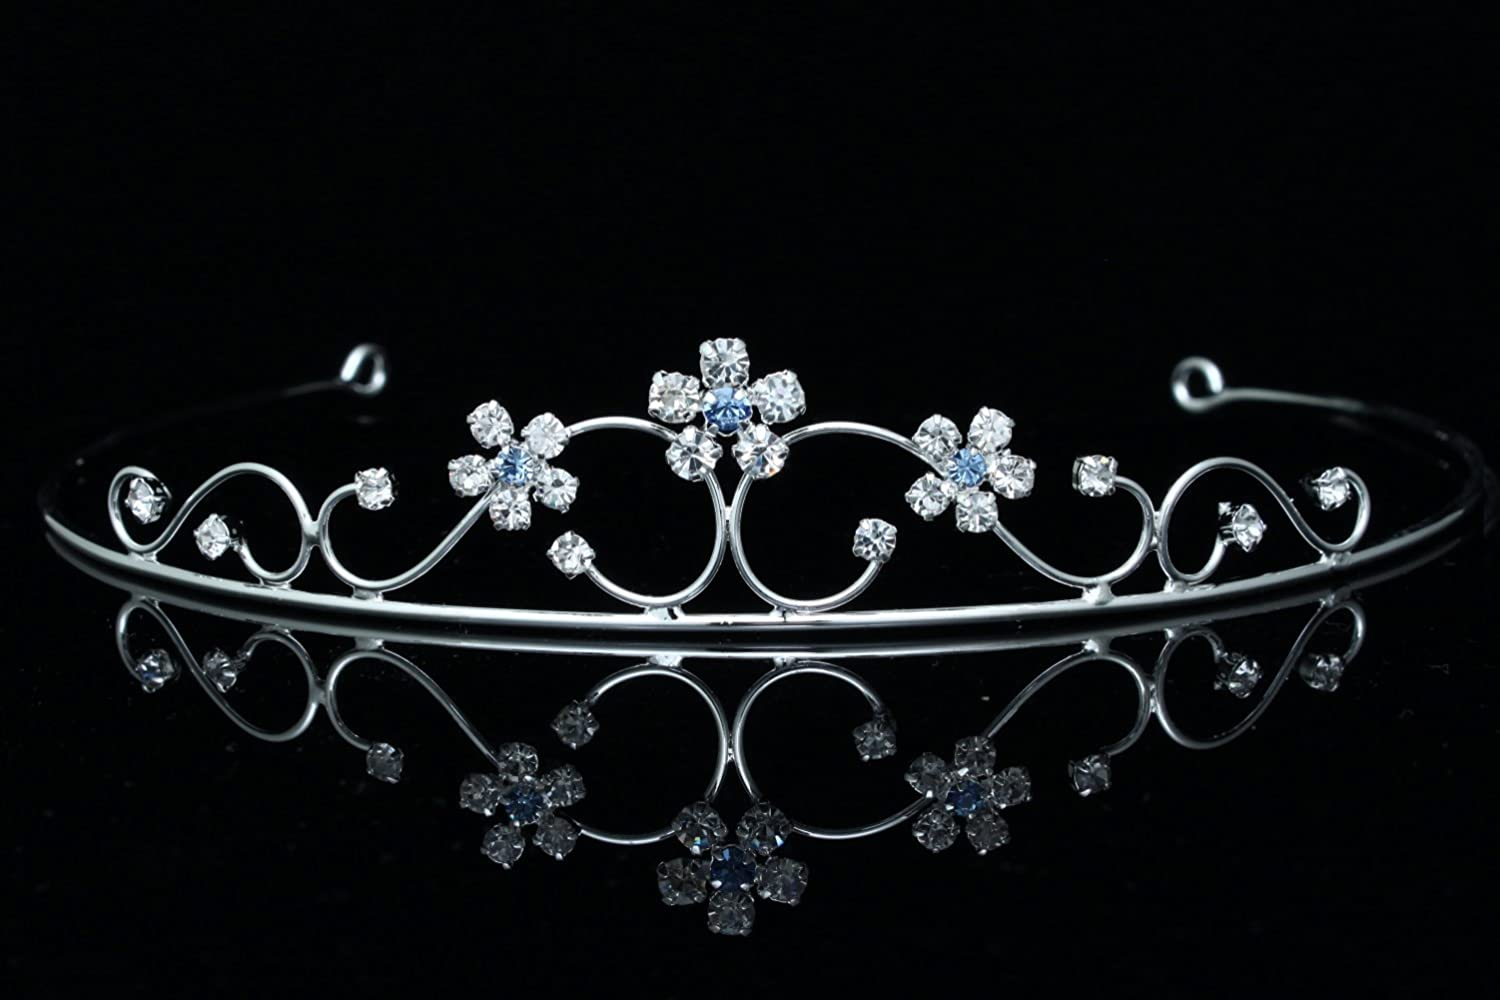 Princess Bridesmaid Flower Girl Rhinestone Crystal Tiara (Blue Crystals Silver Plated) T460